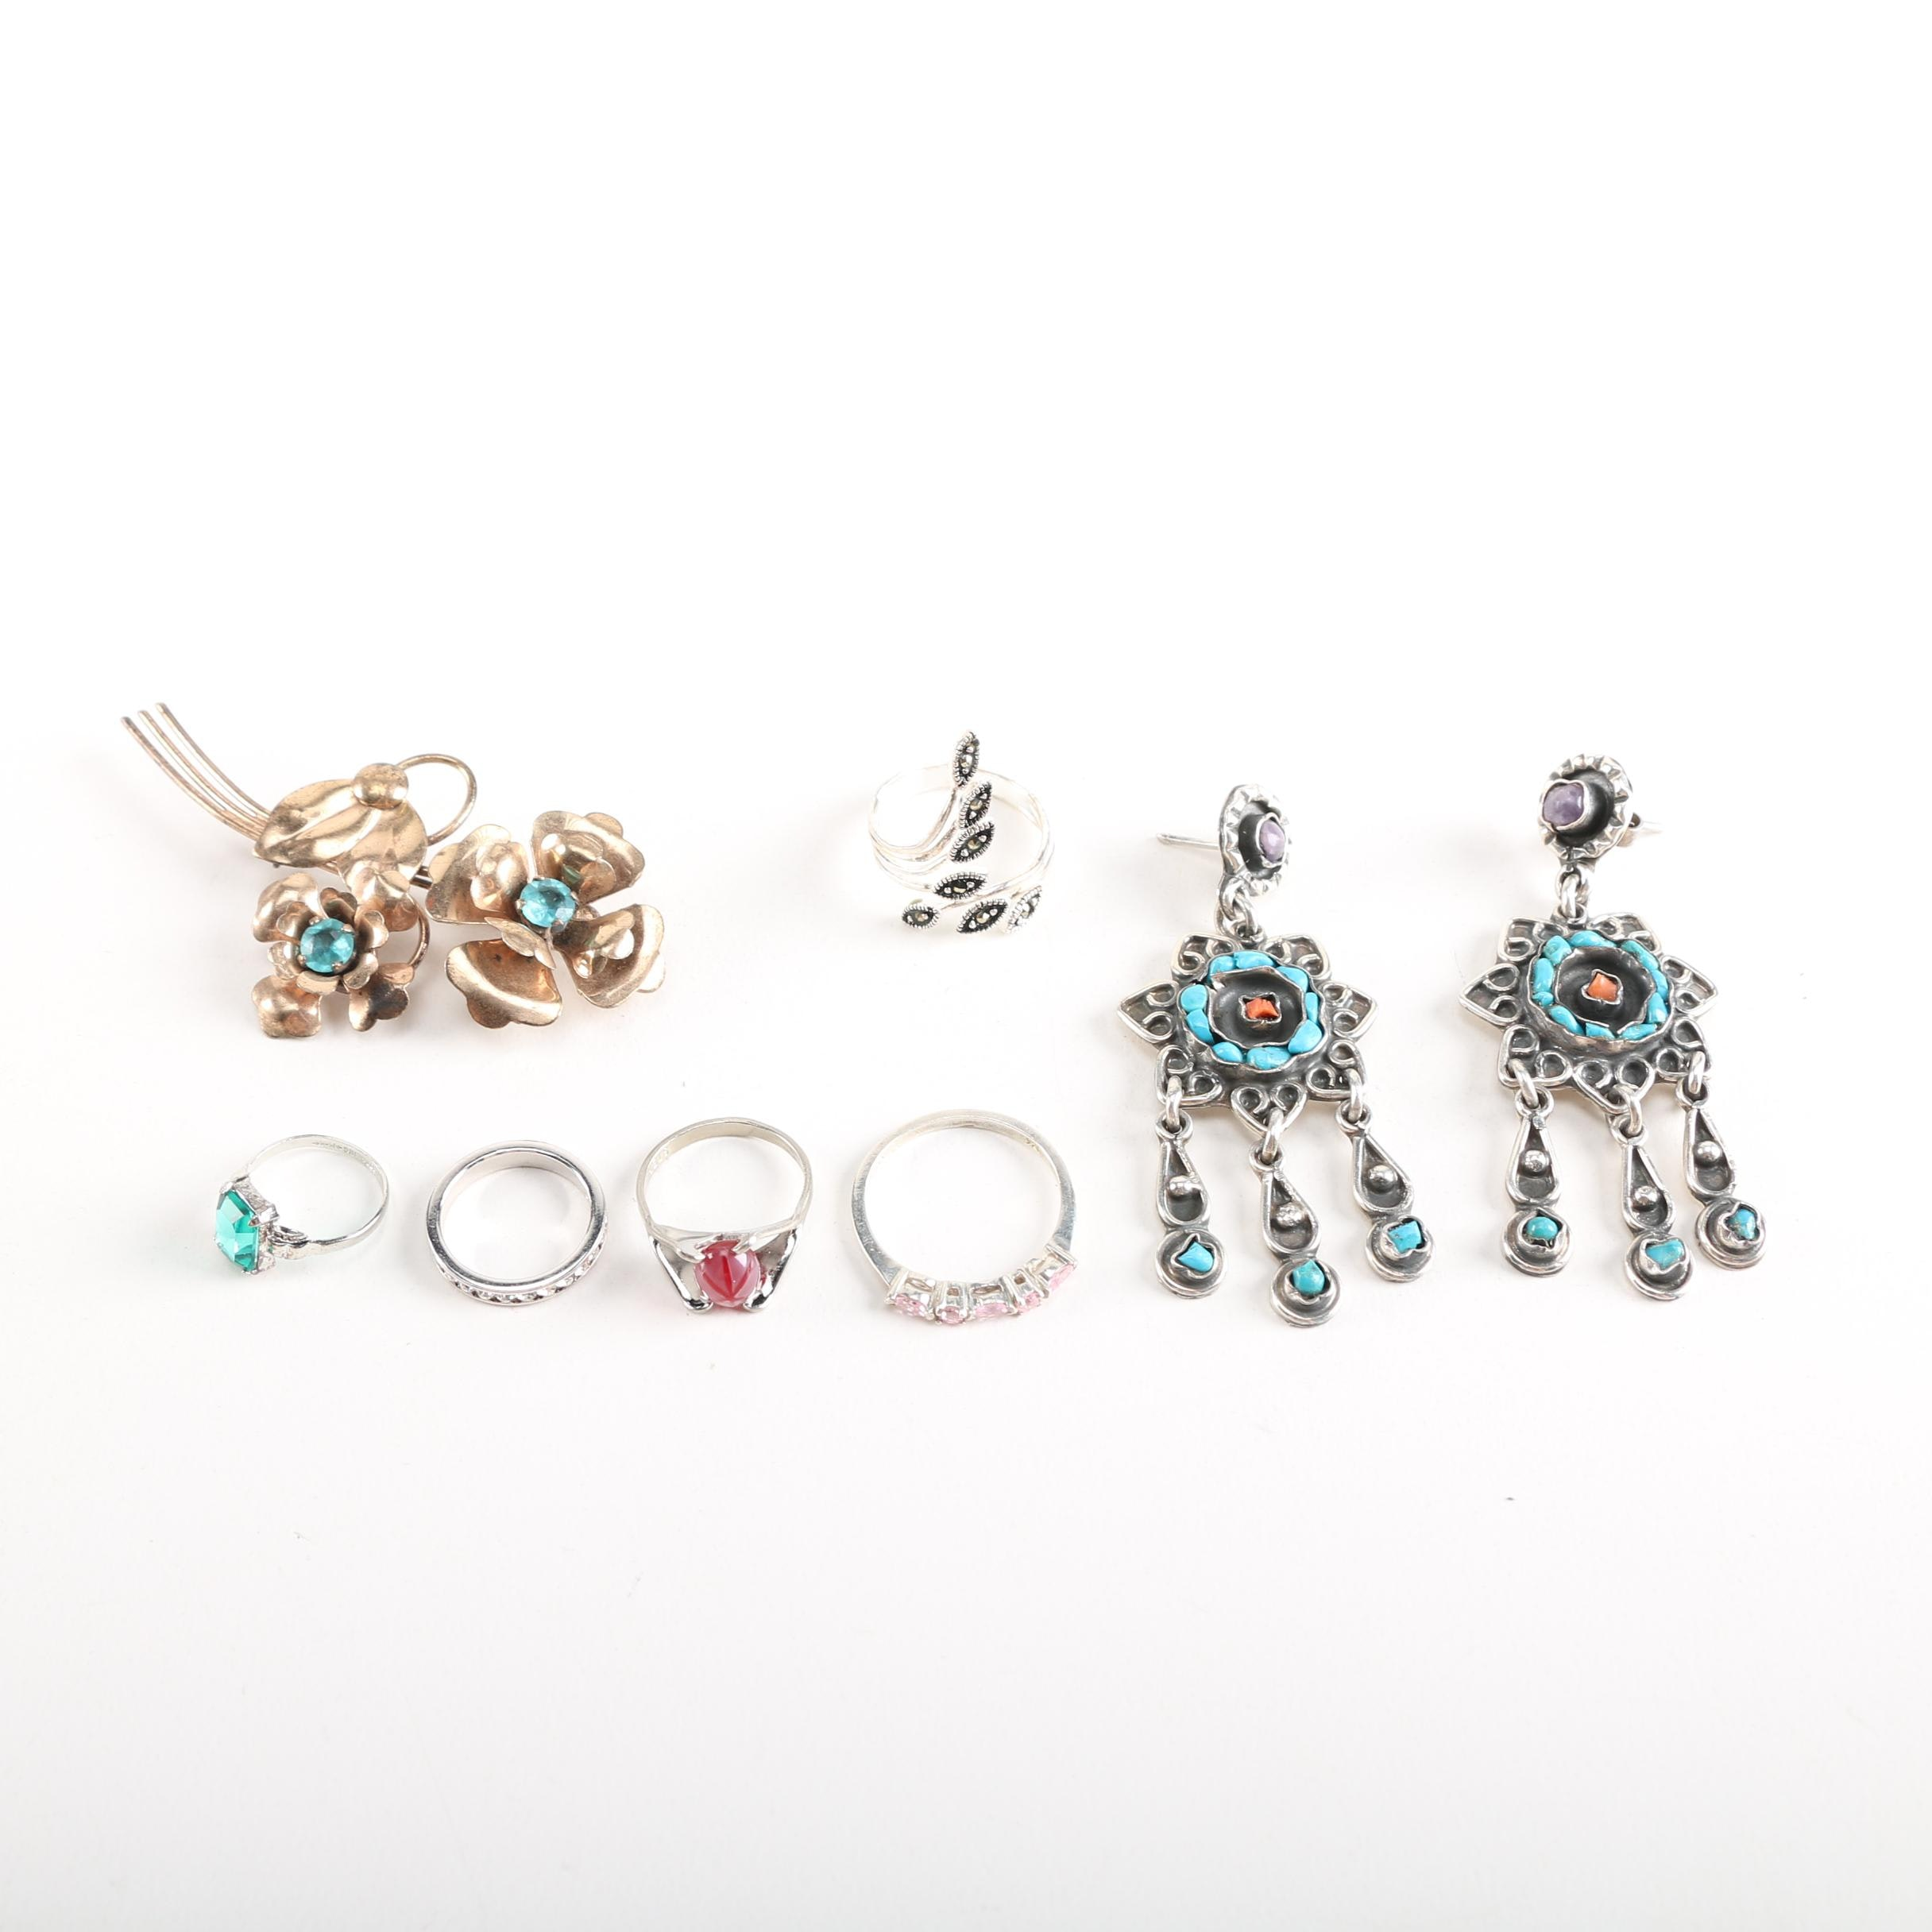 Sterling Silver Jewelry Including a Pair of Chandelier Earrings